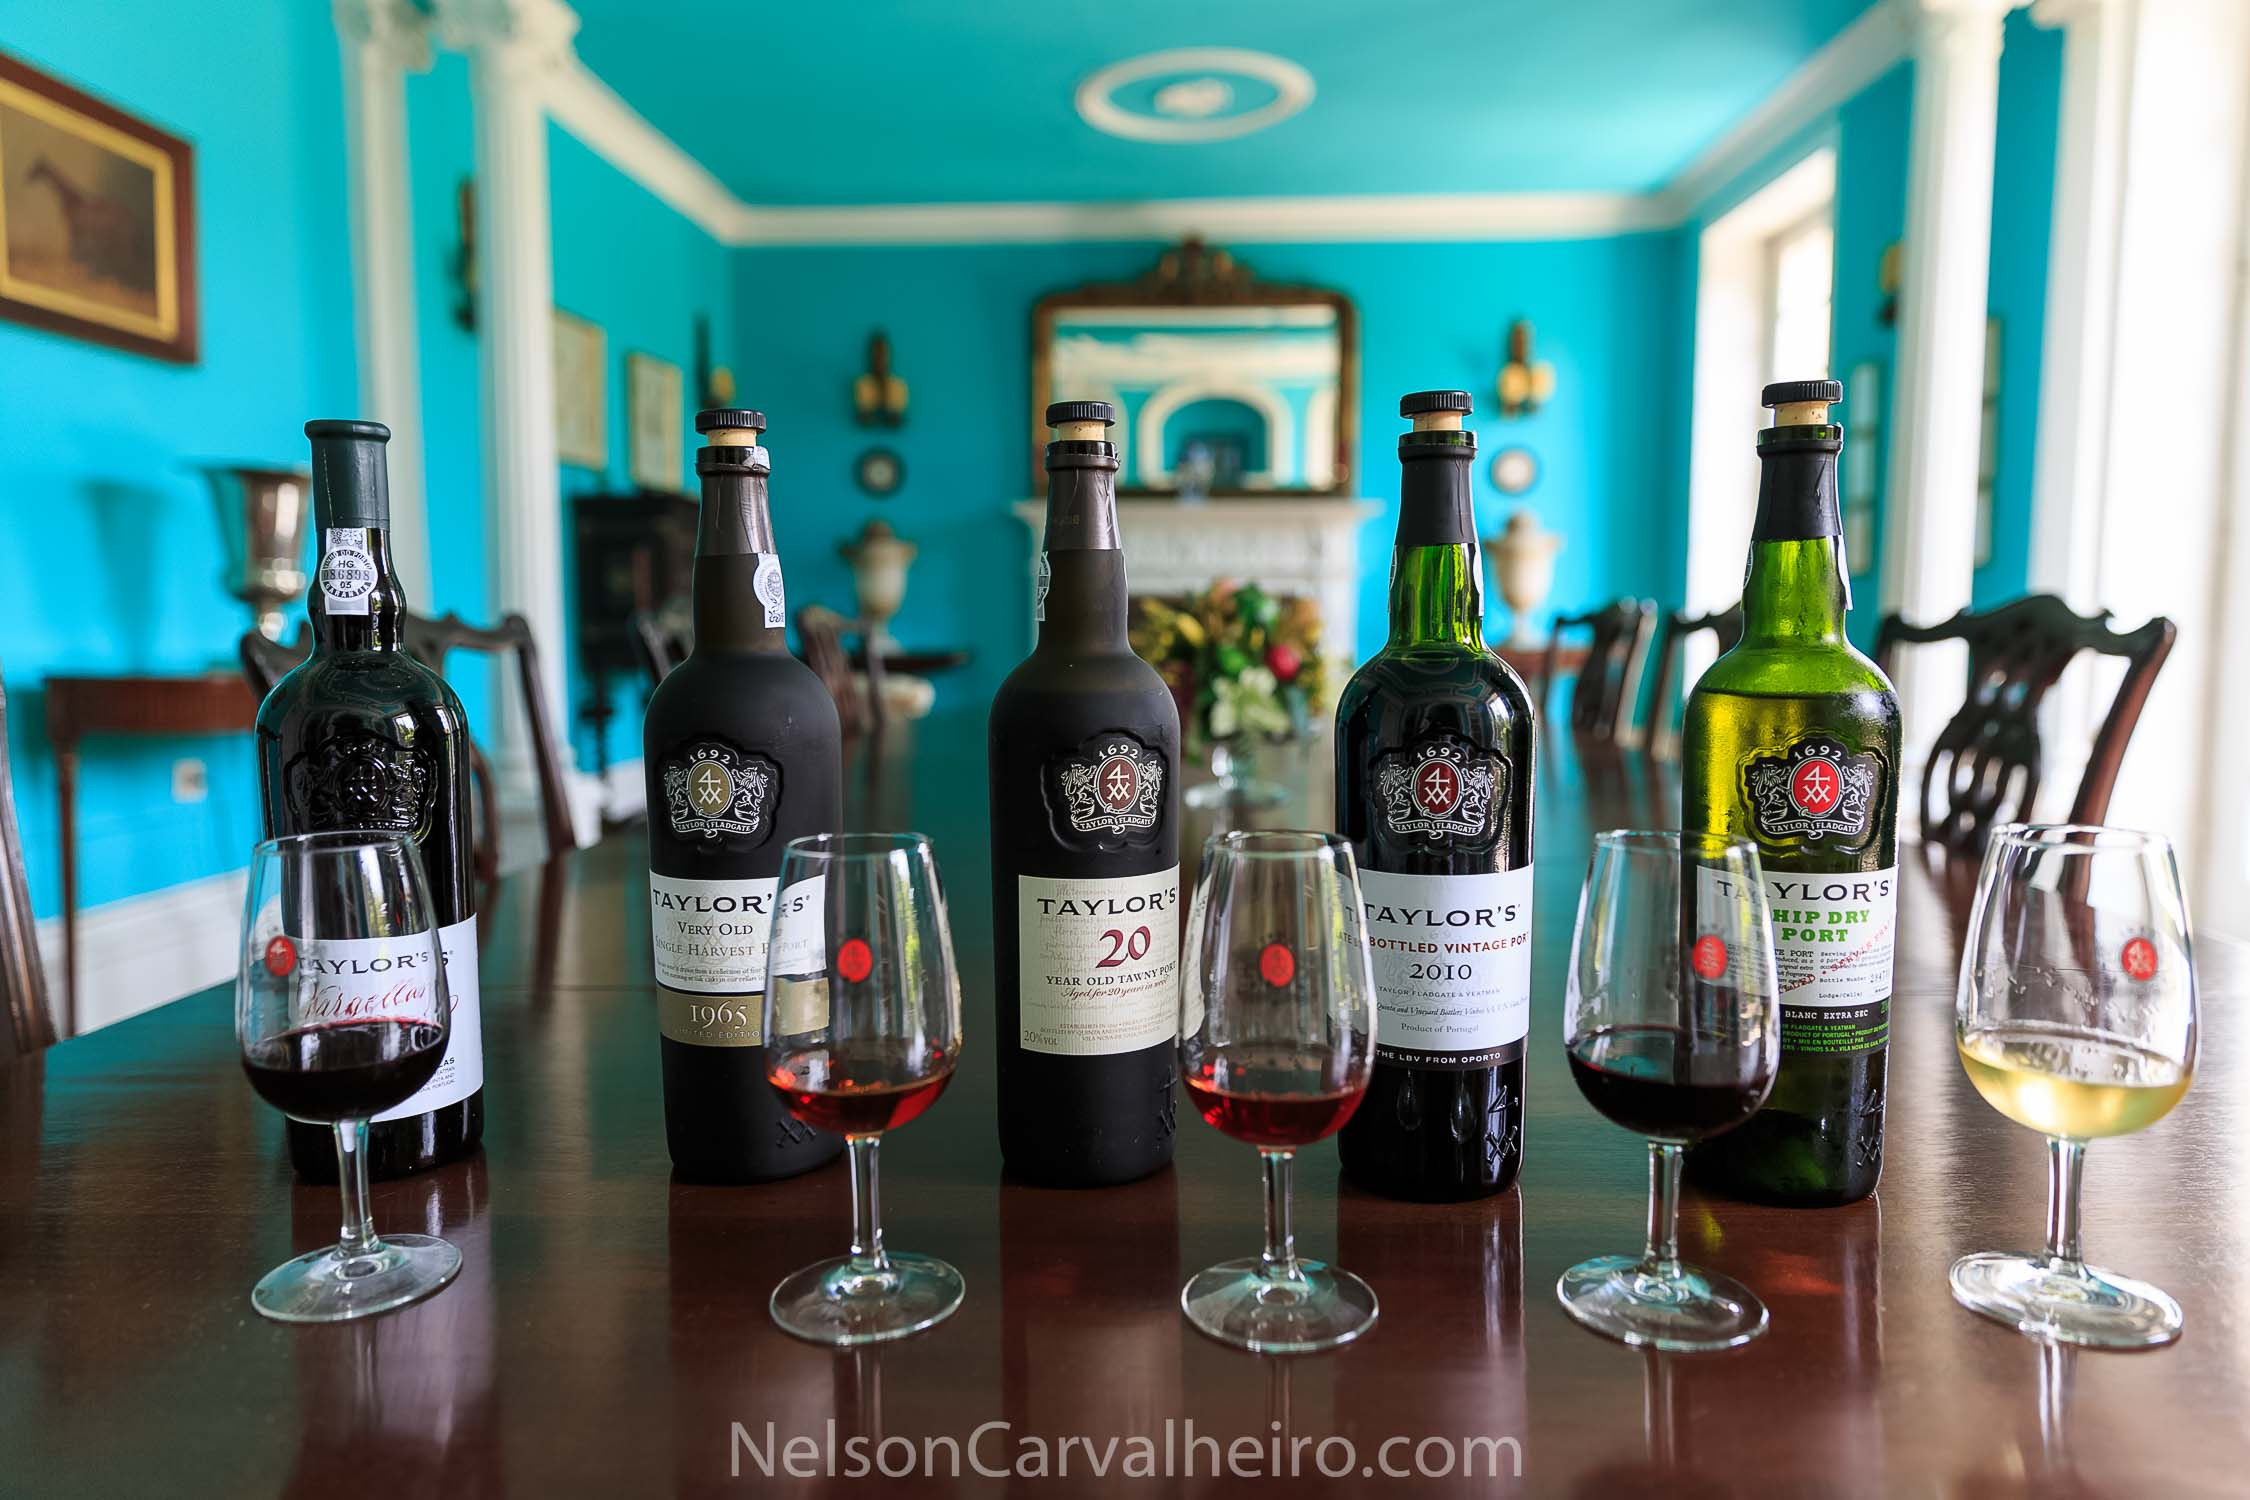 Nelson_Carvalheiro_Portuguese_Taylors_Port_Wine-3